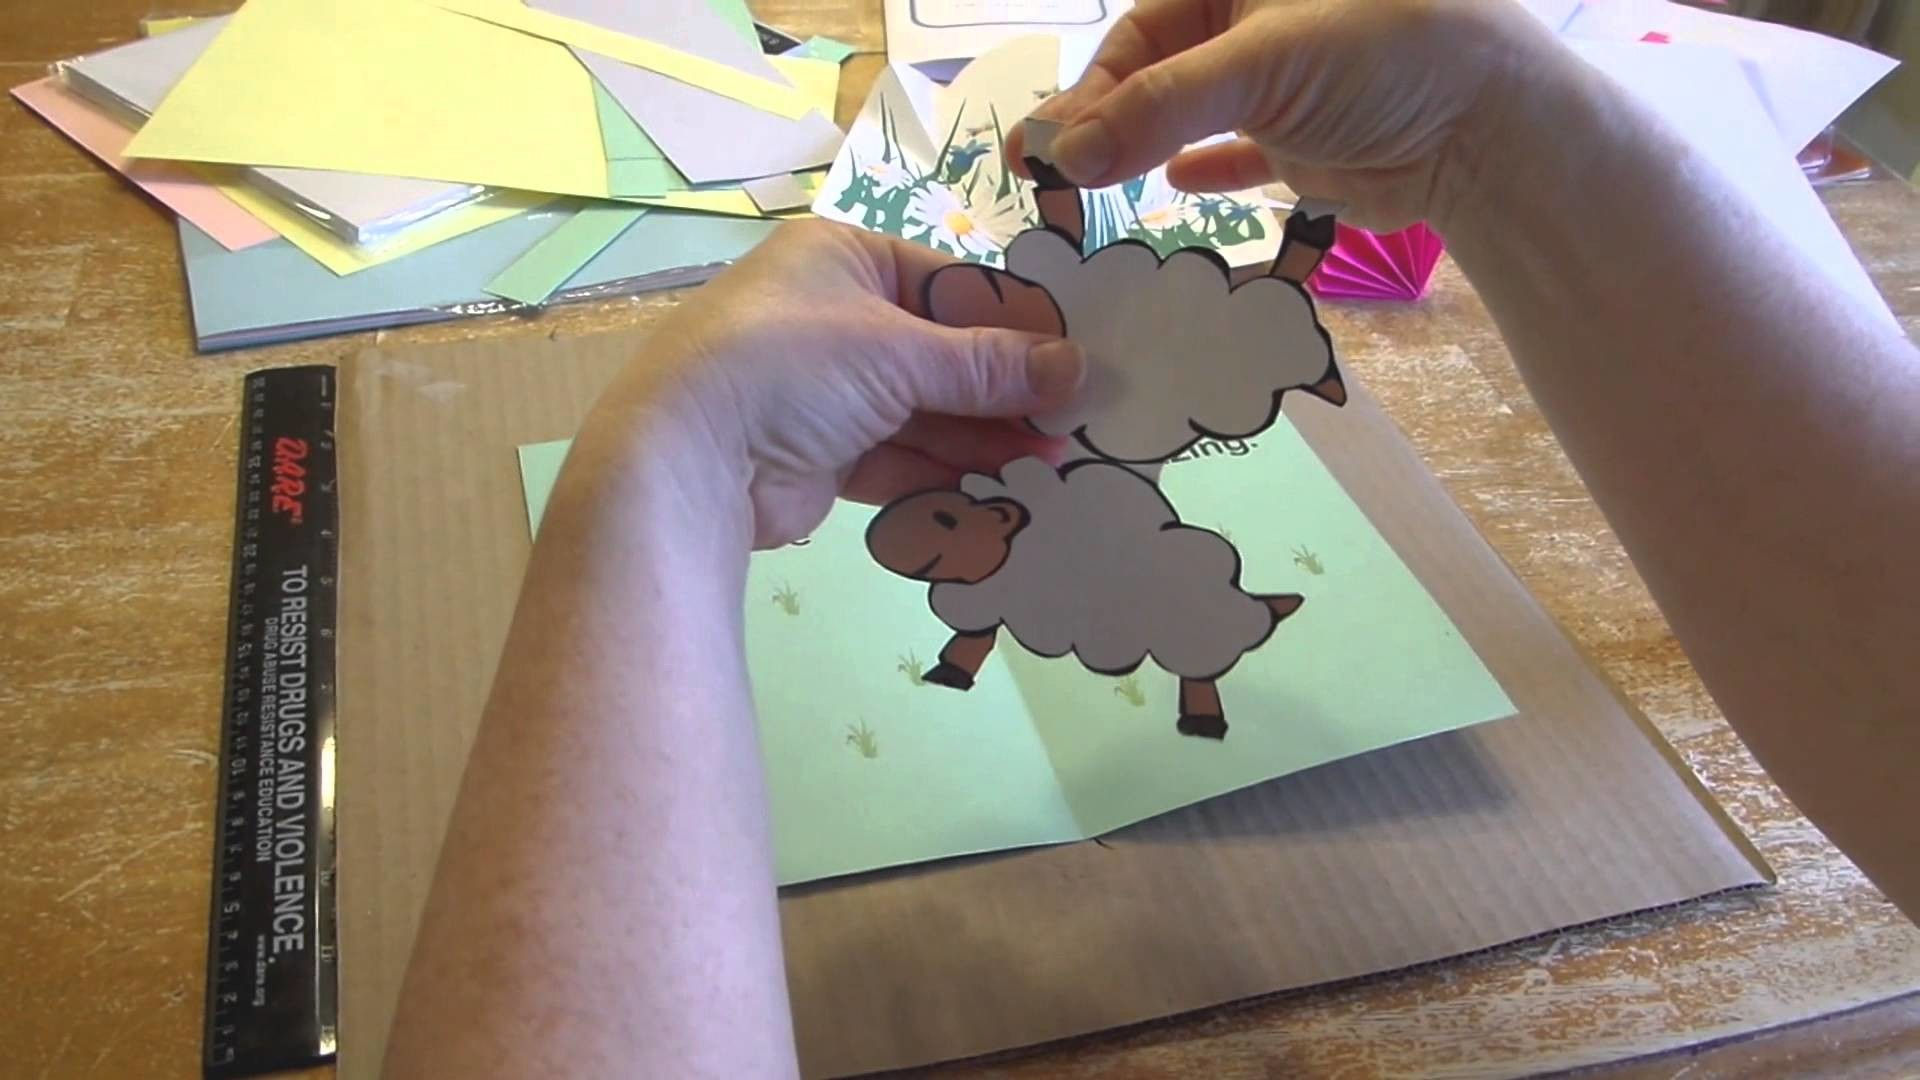 The Making of a Pop-up Book